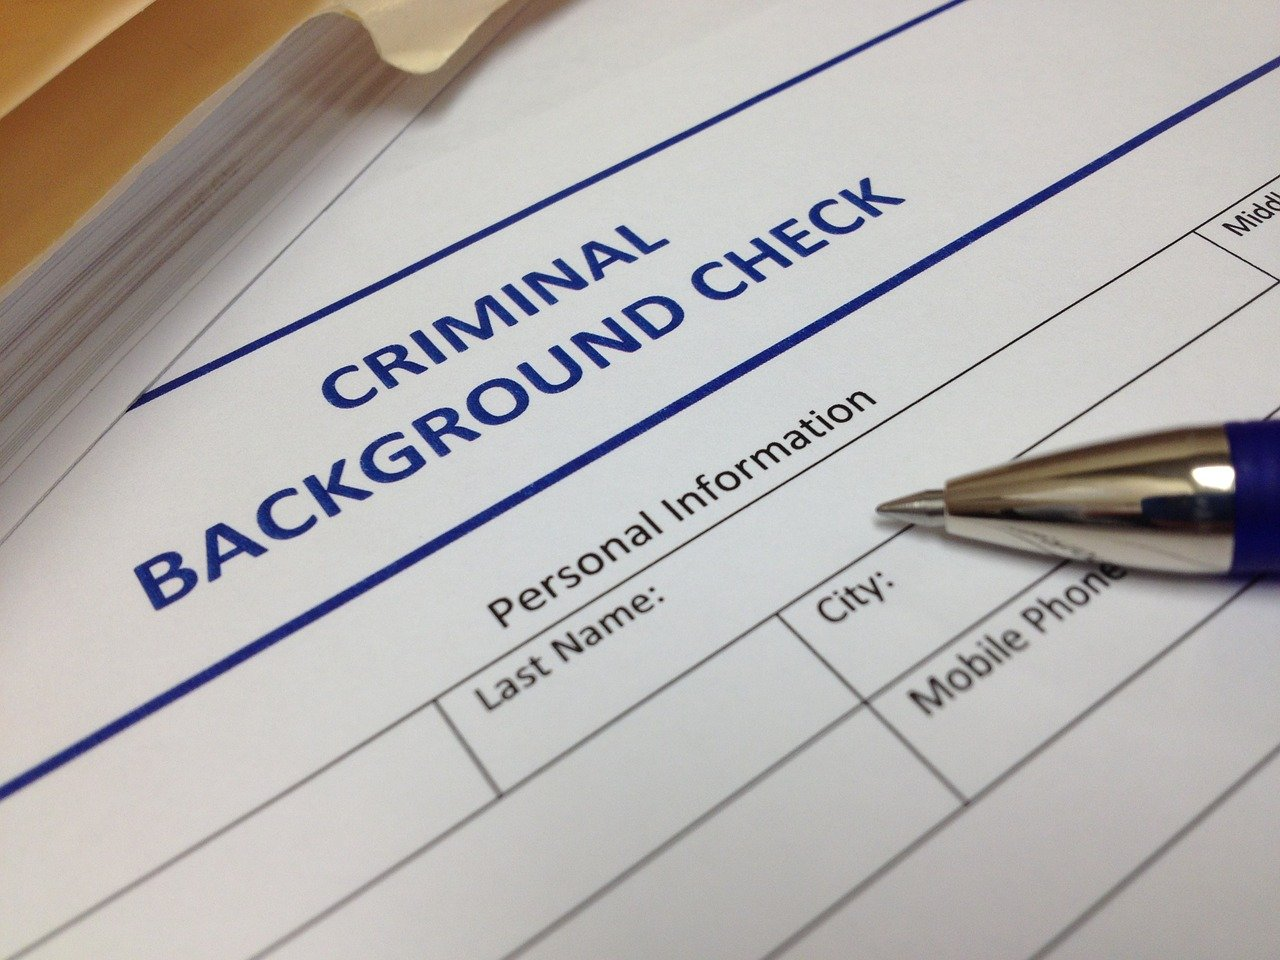 Background check services are high risk